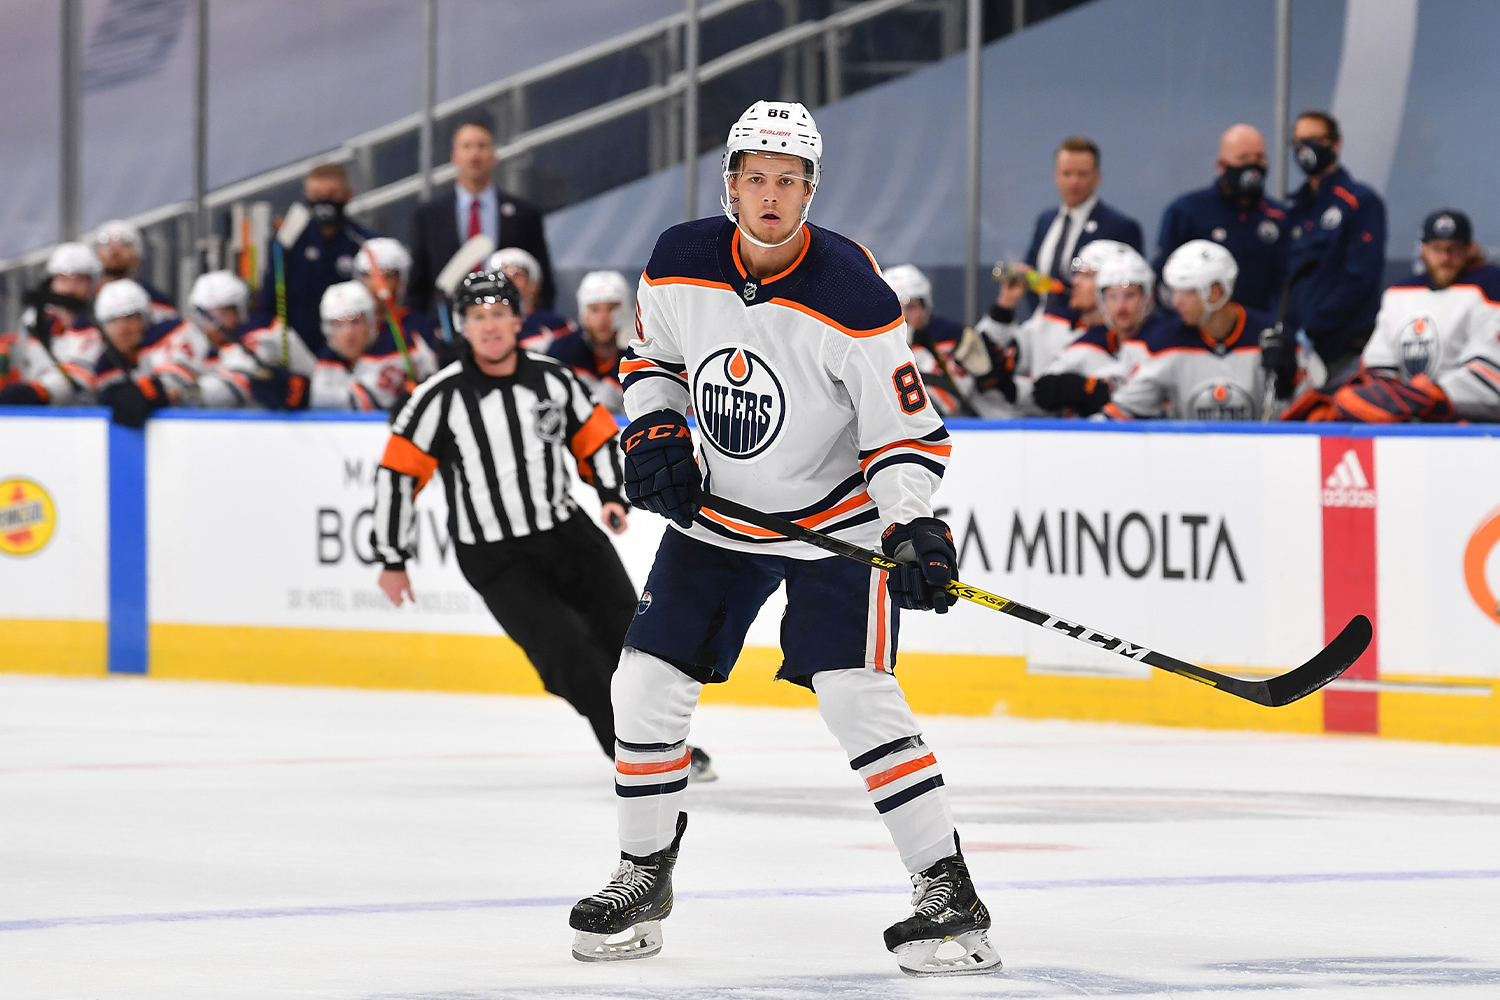 Philip Broberg #86 of the Edmonton Oilers mans the point during first period of an exhibition game against the Calgary Flames prior to the 2020 NHL Stanley Cup Playoffs at Rogers Place on July 28, 2020